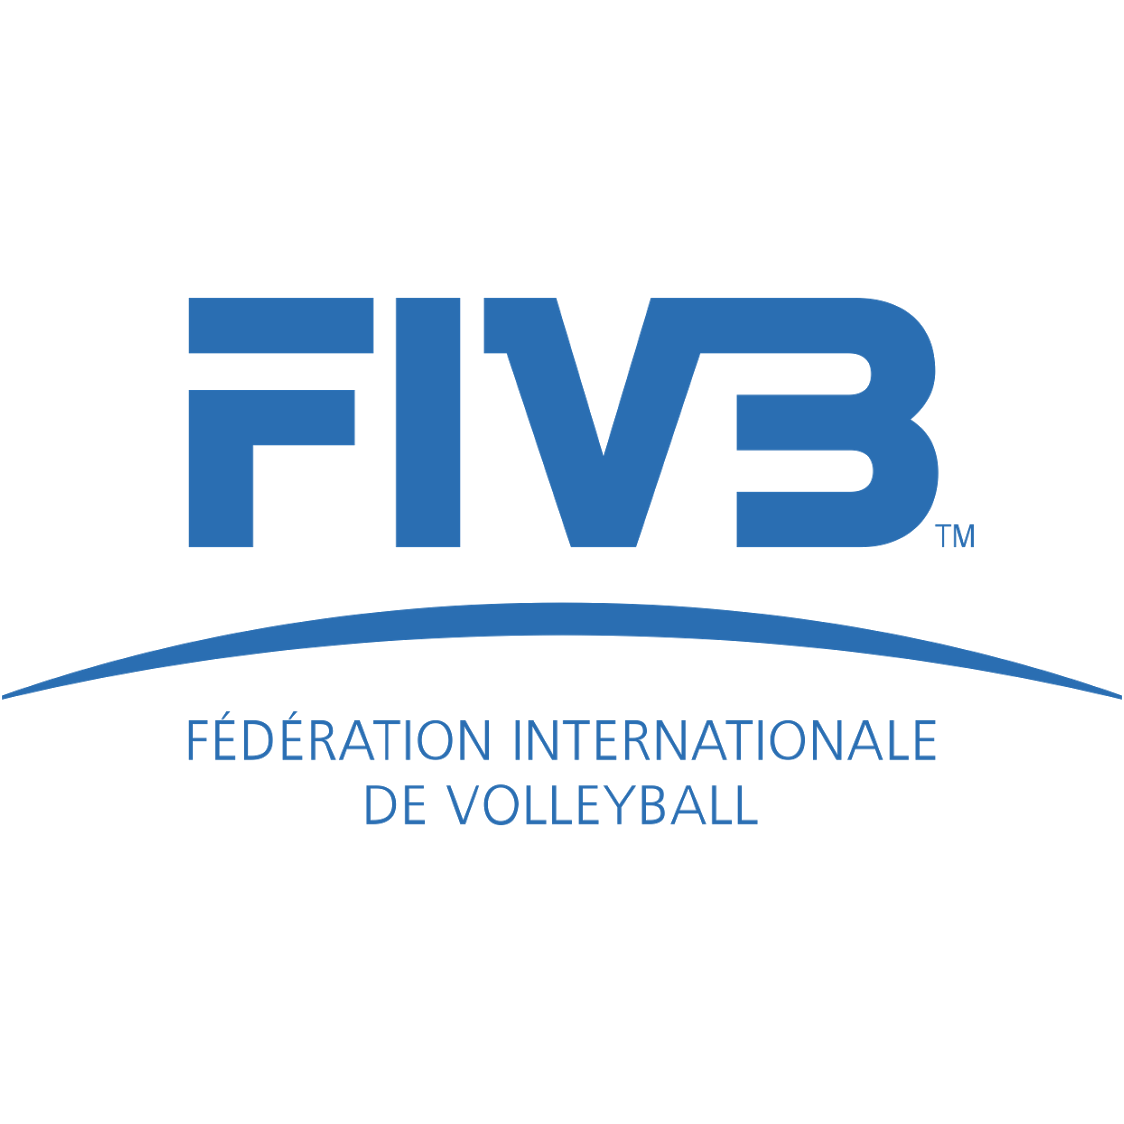 2021 FIVB Volleyball Women's Club World Championship